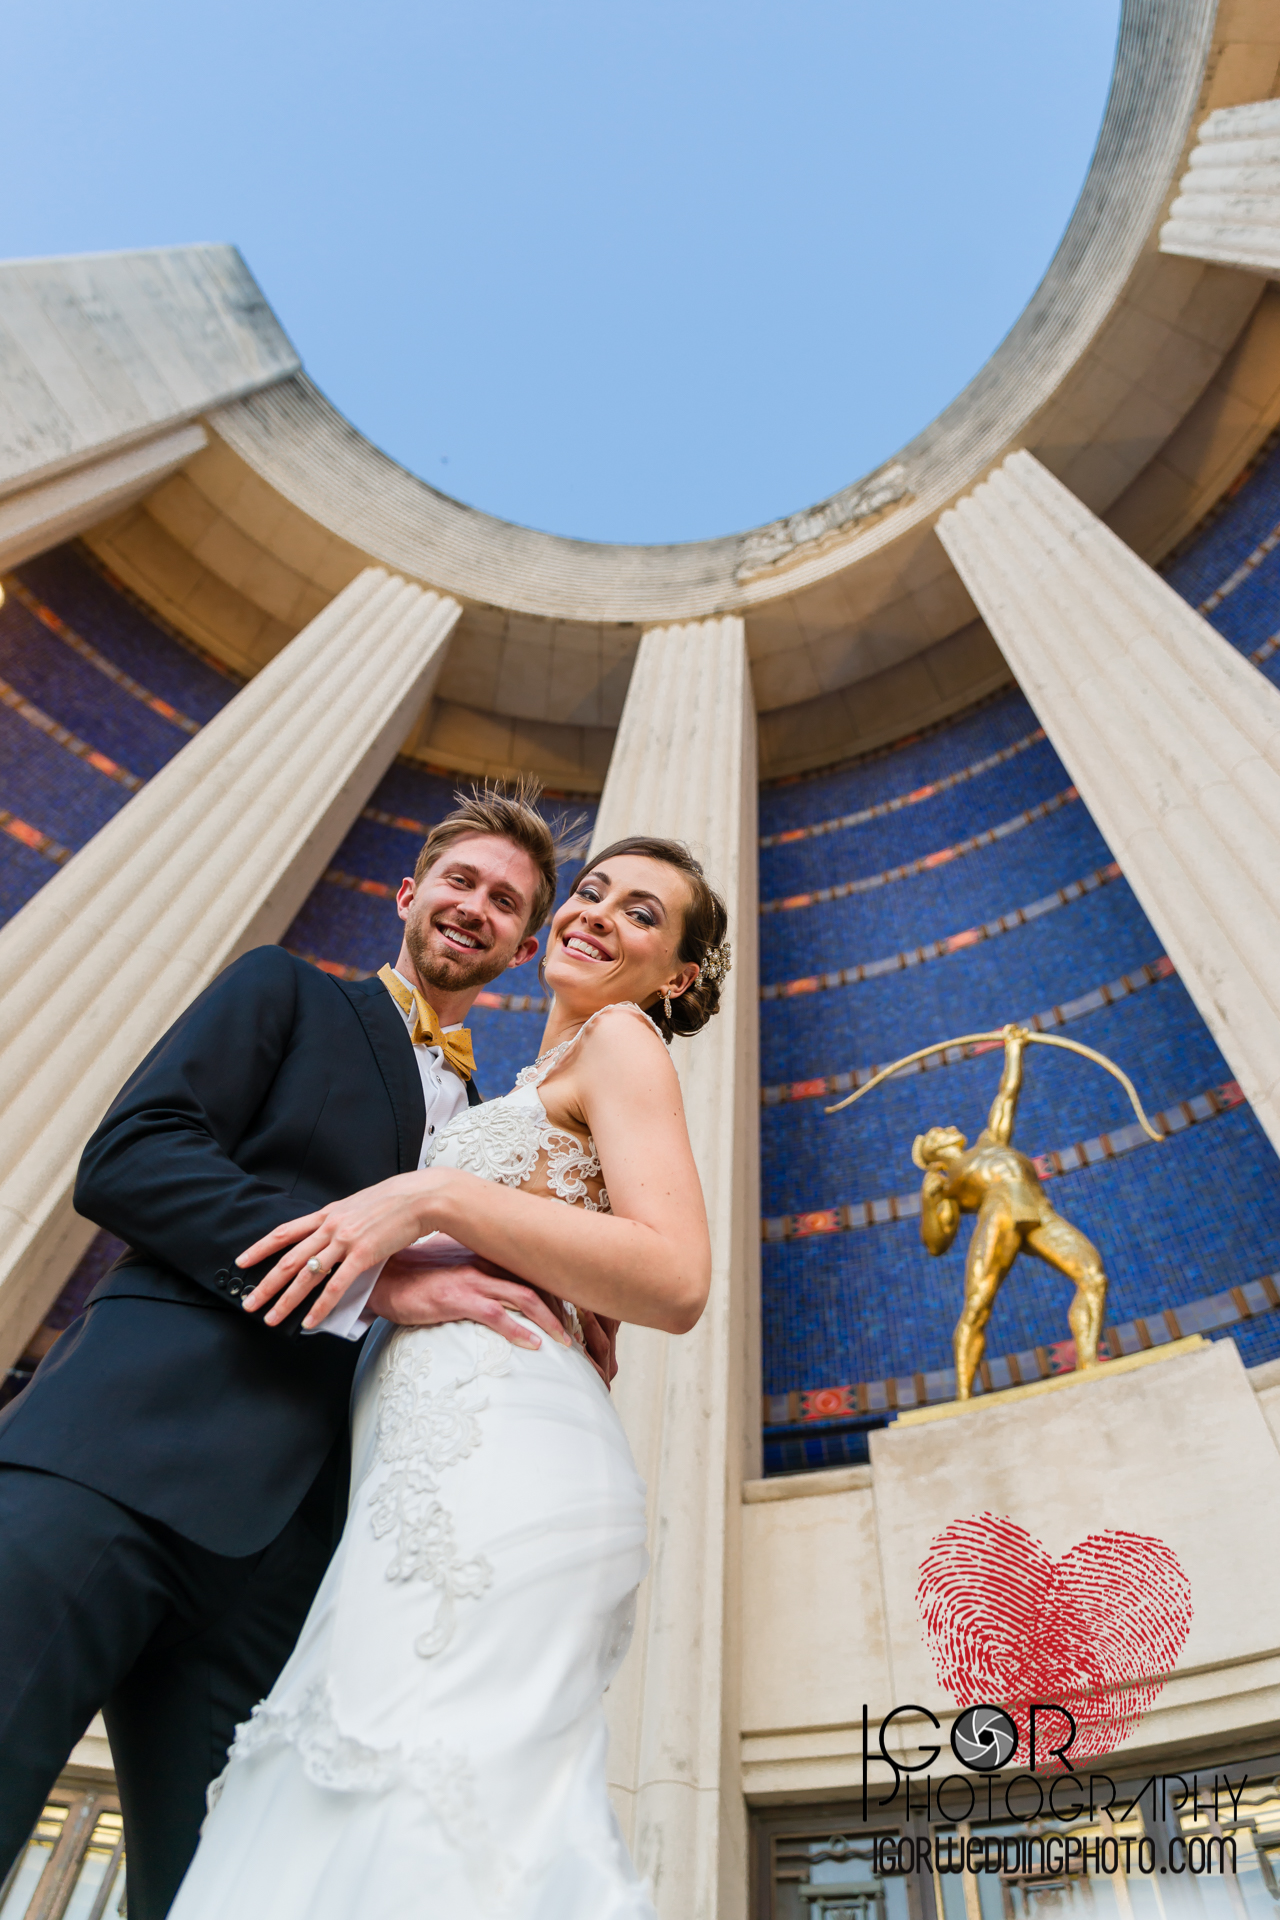 Fair Park wedding photography